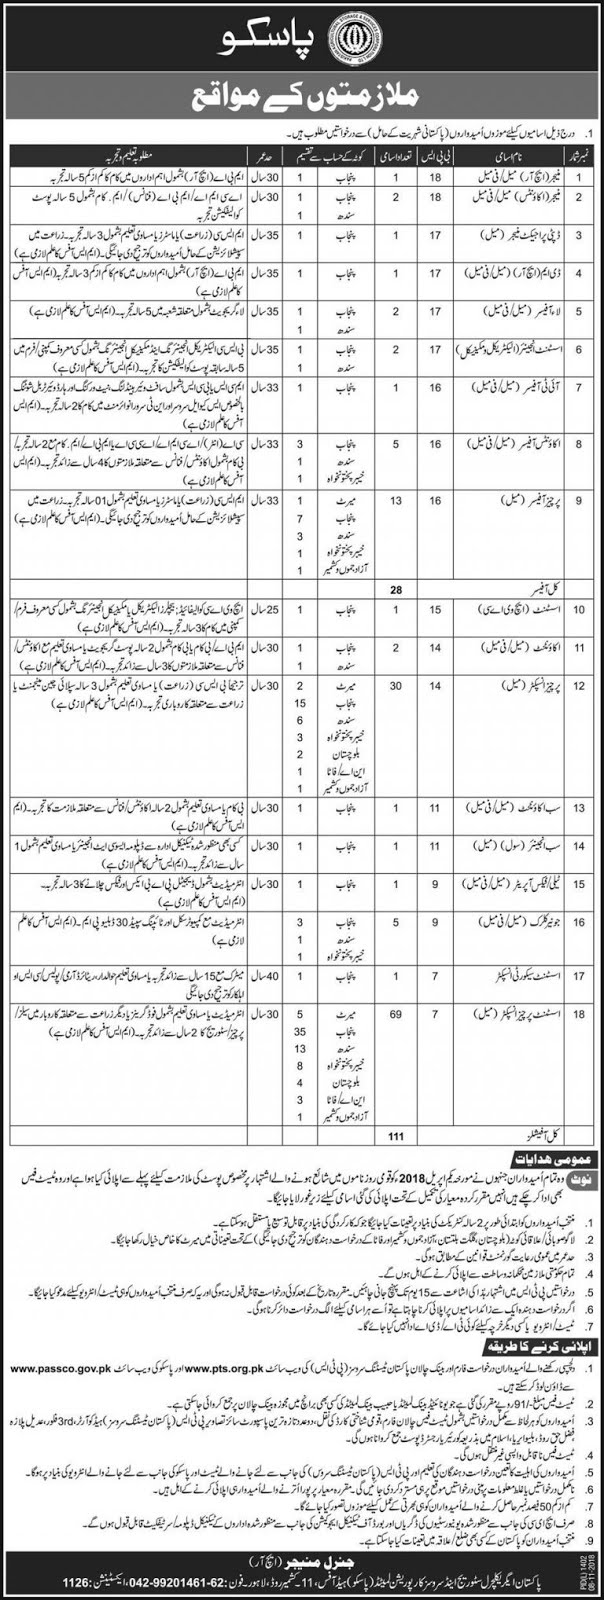 Jobs-in-Pakistan-Agricultural-Storage-Services-Corporation-Limited-PASSCO-08-Nov-2018-768x2036%2B%25281%2529